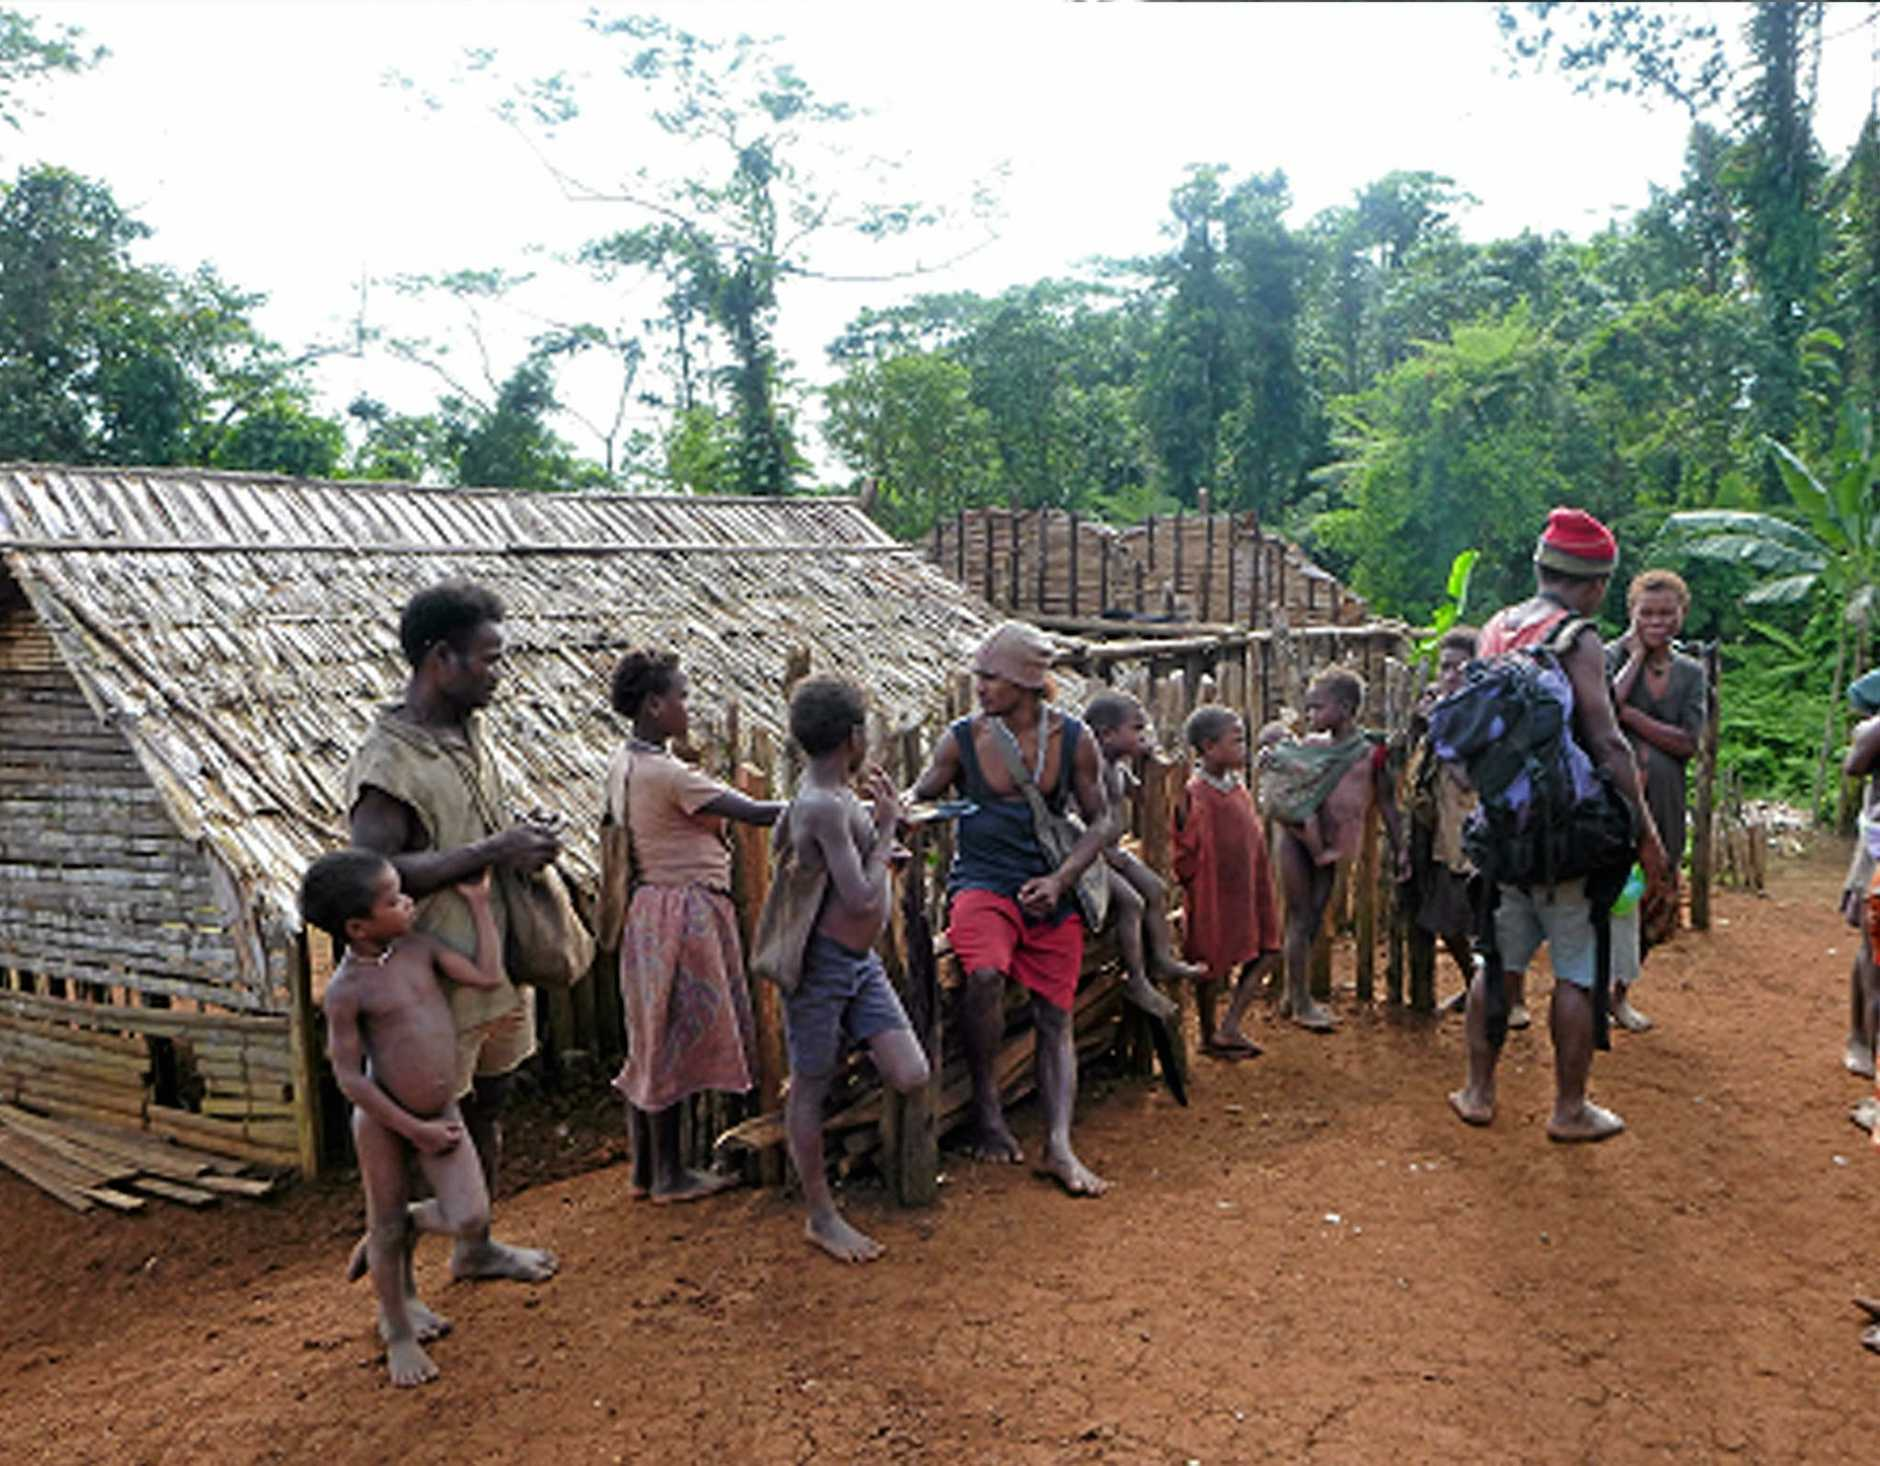 A group of local bushmen on the island.